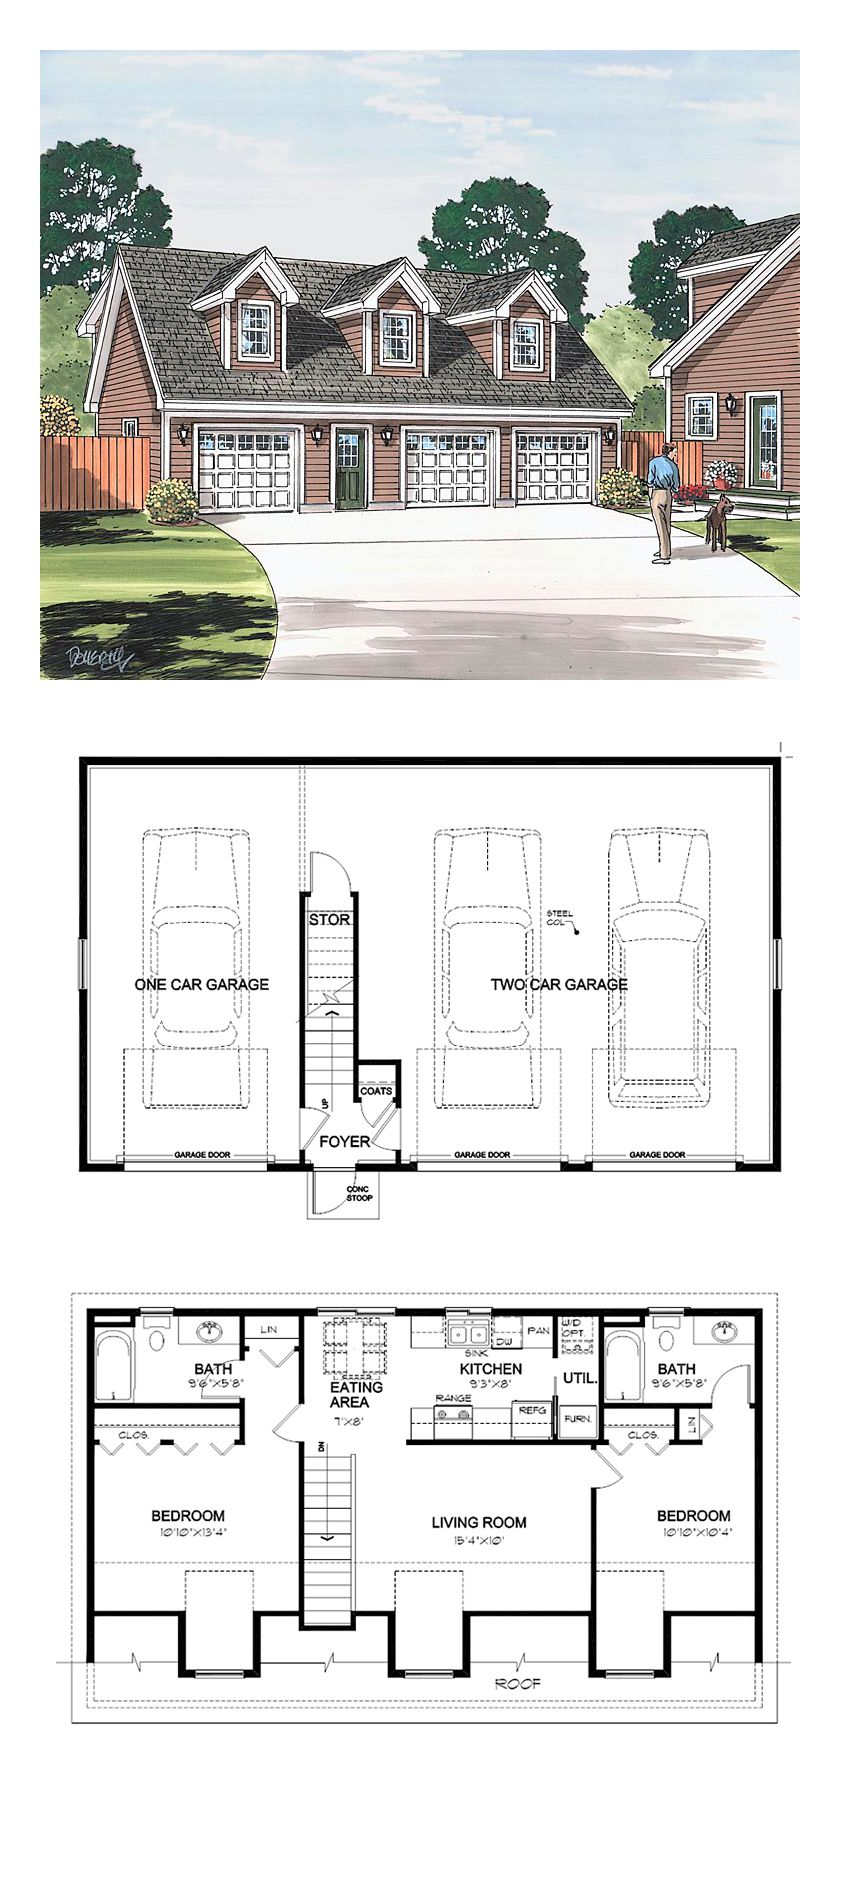 Garage apartment plan 30032 total living area 887 sq for Garage house floor plans